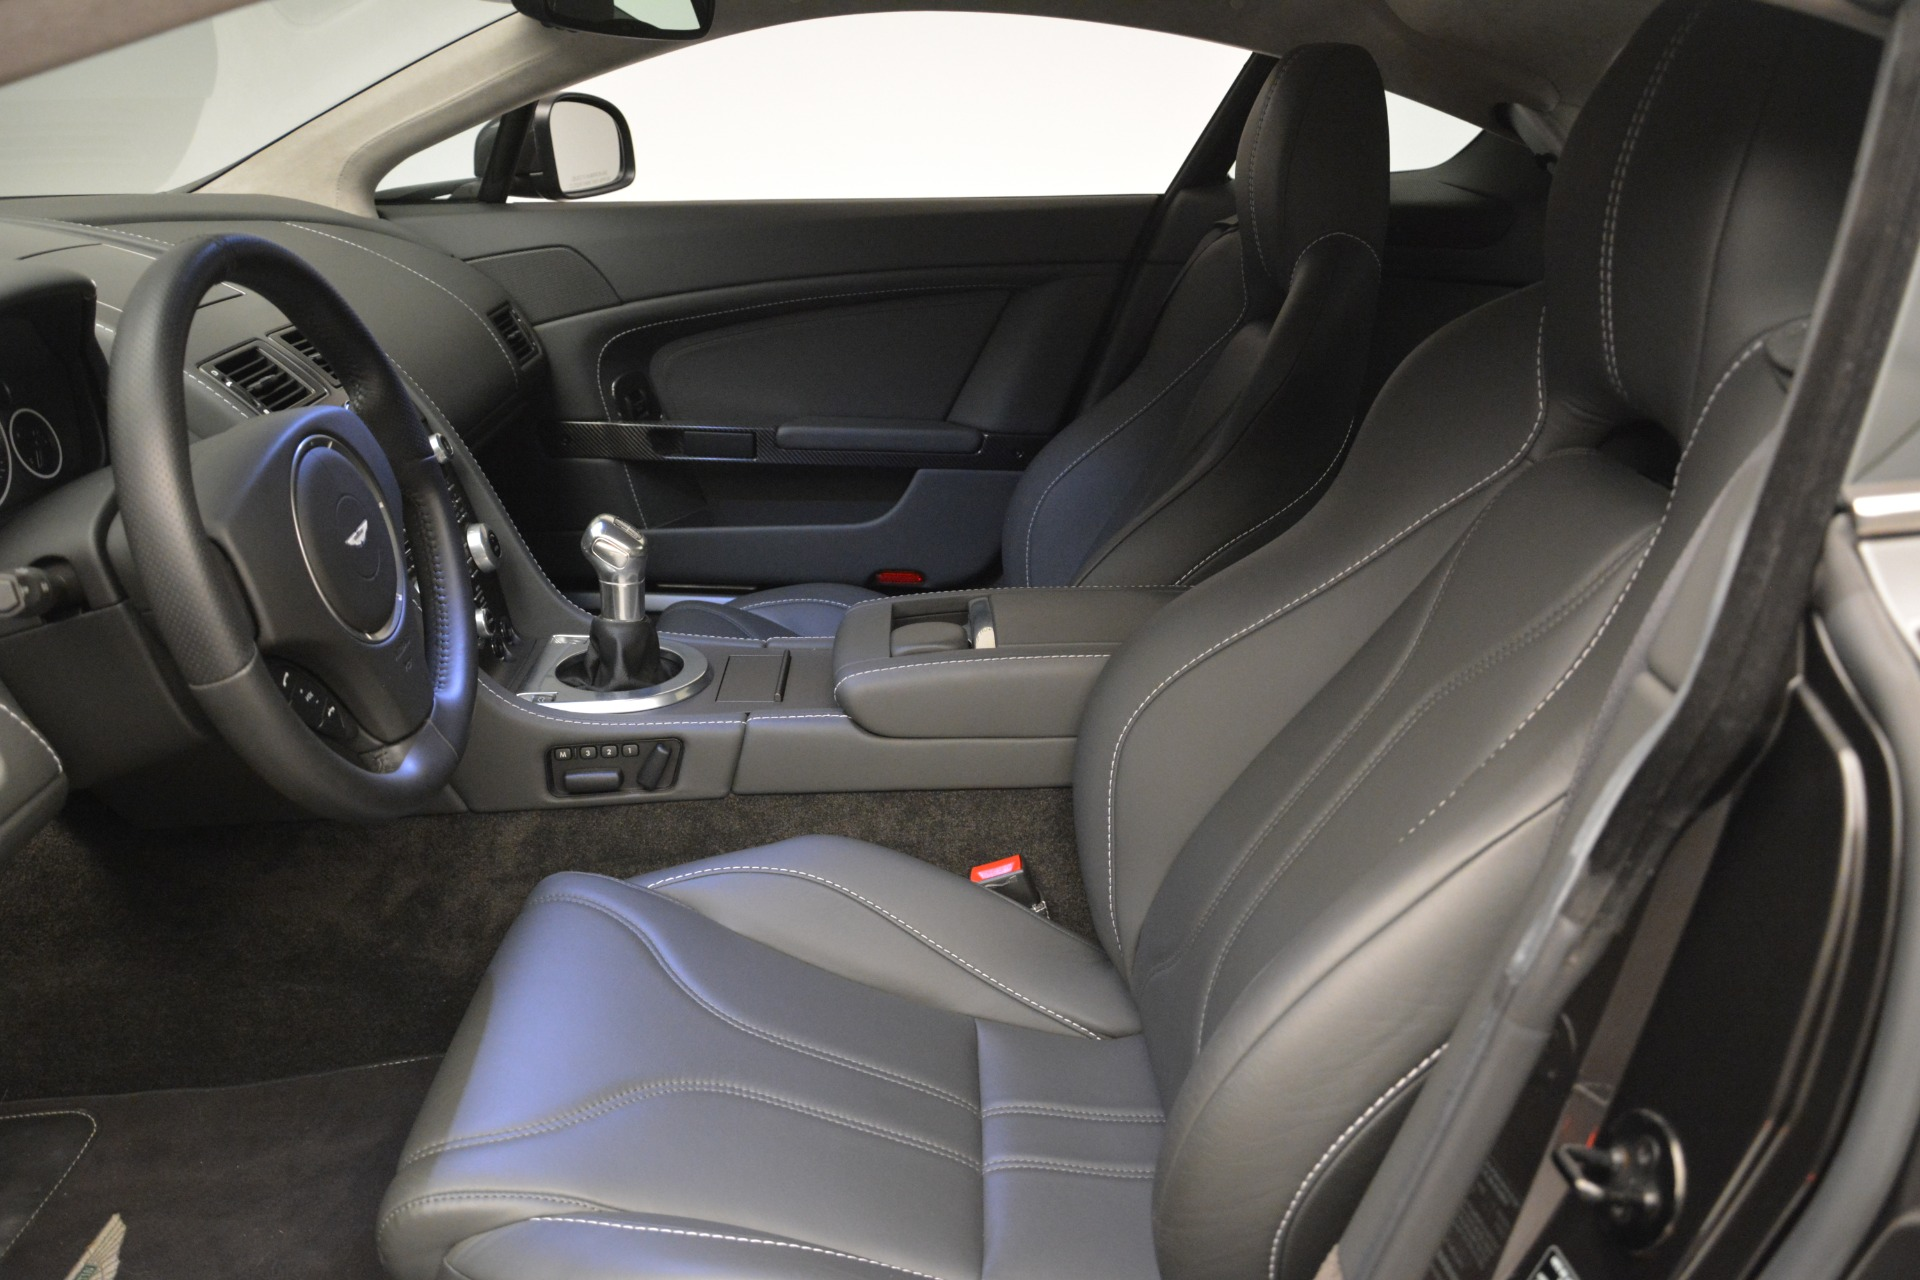 Used 2012 Aston Martin V12 Vantage Coupe For Sale In Westport, CT 2544_p13